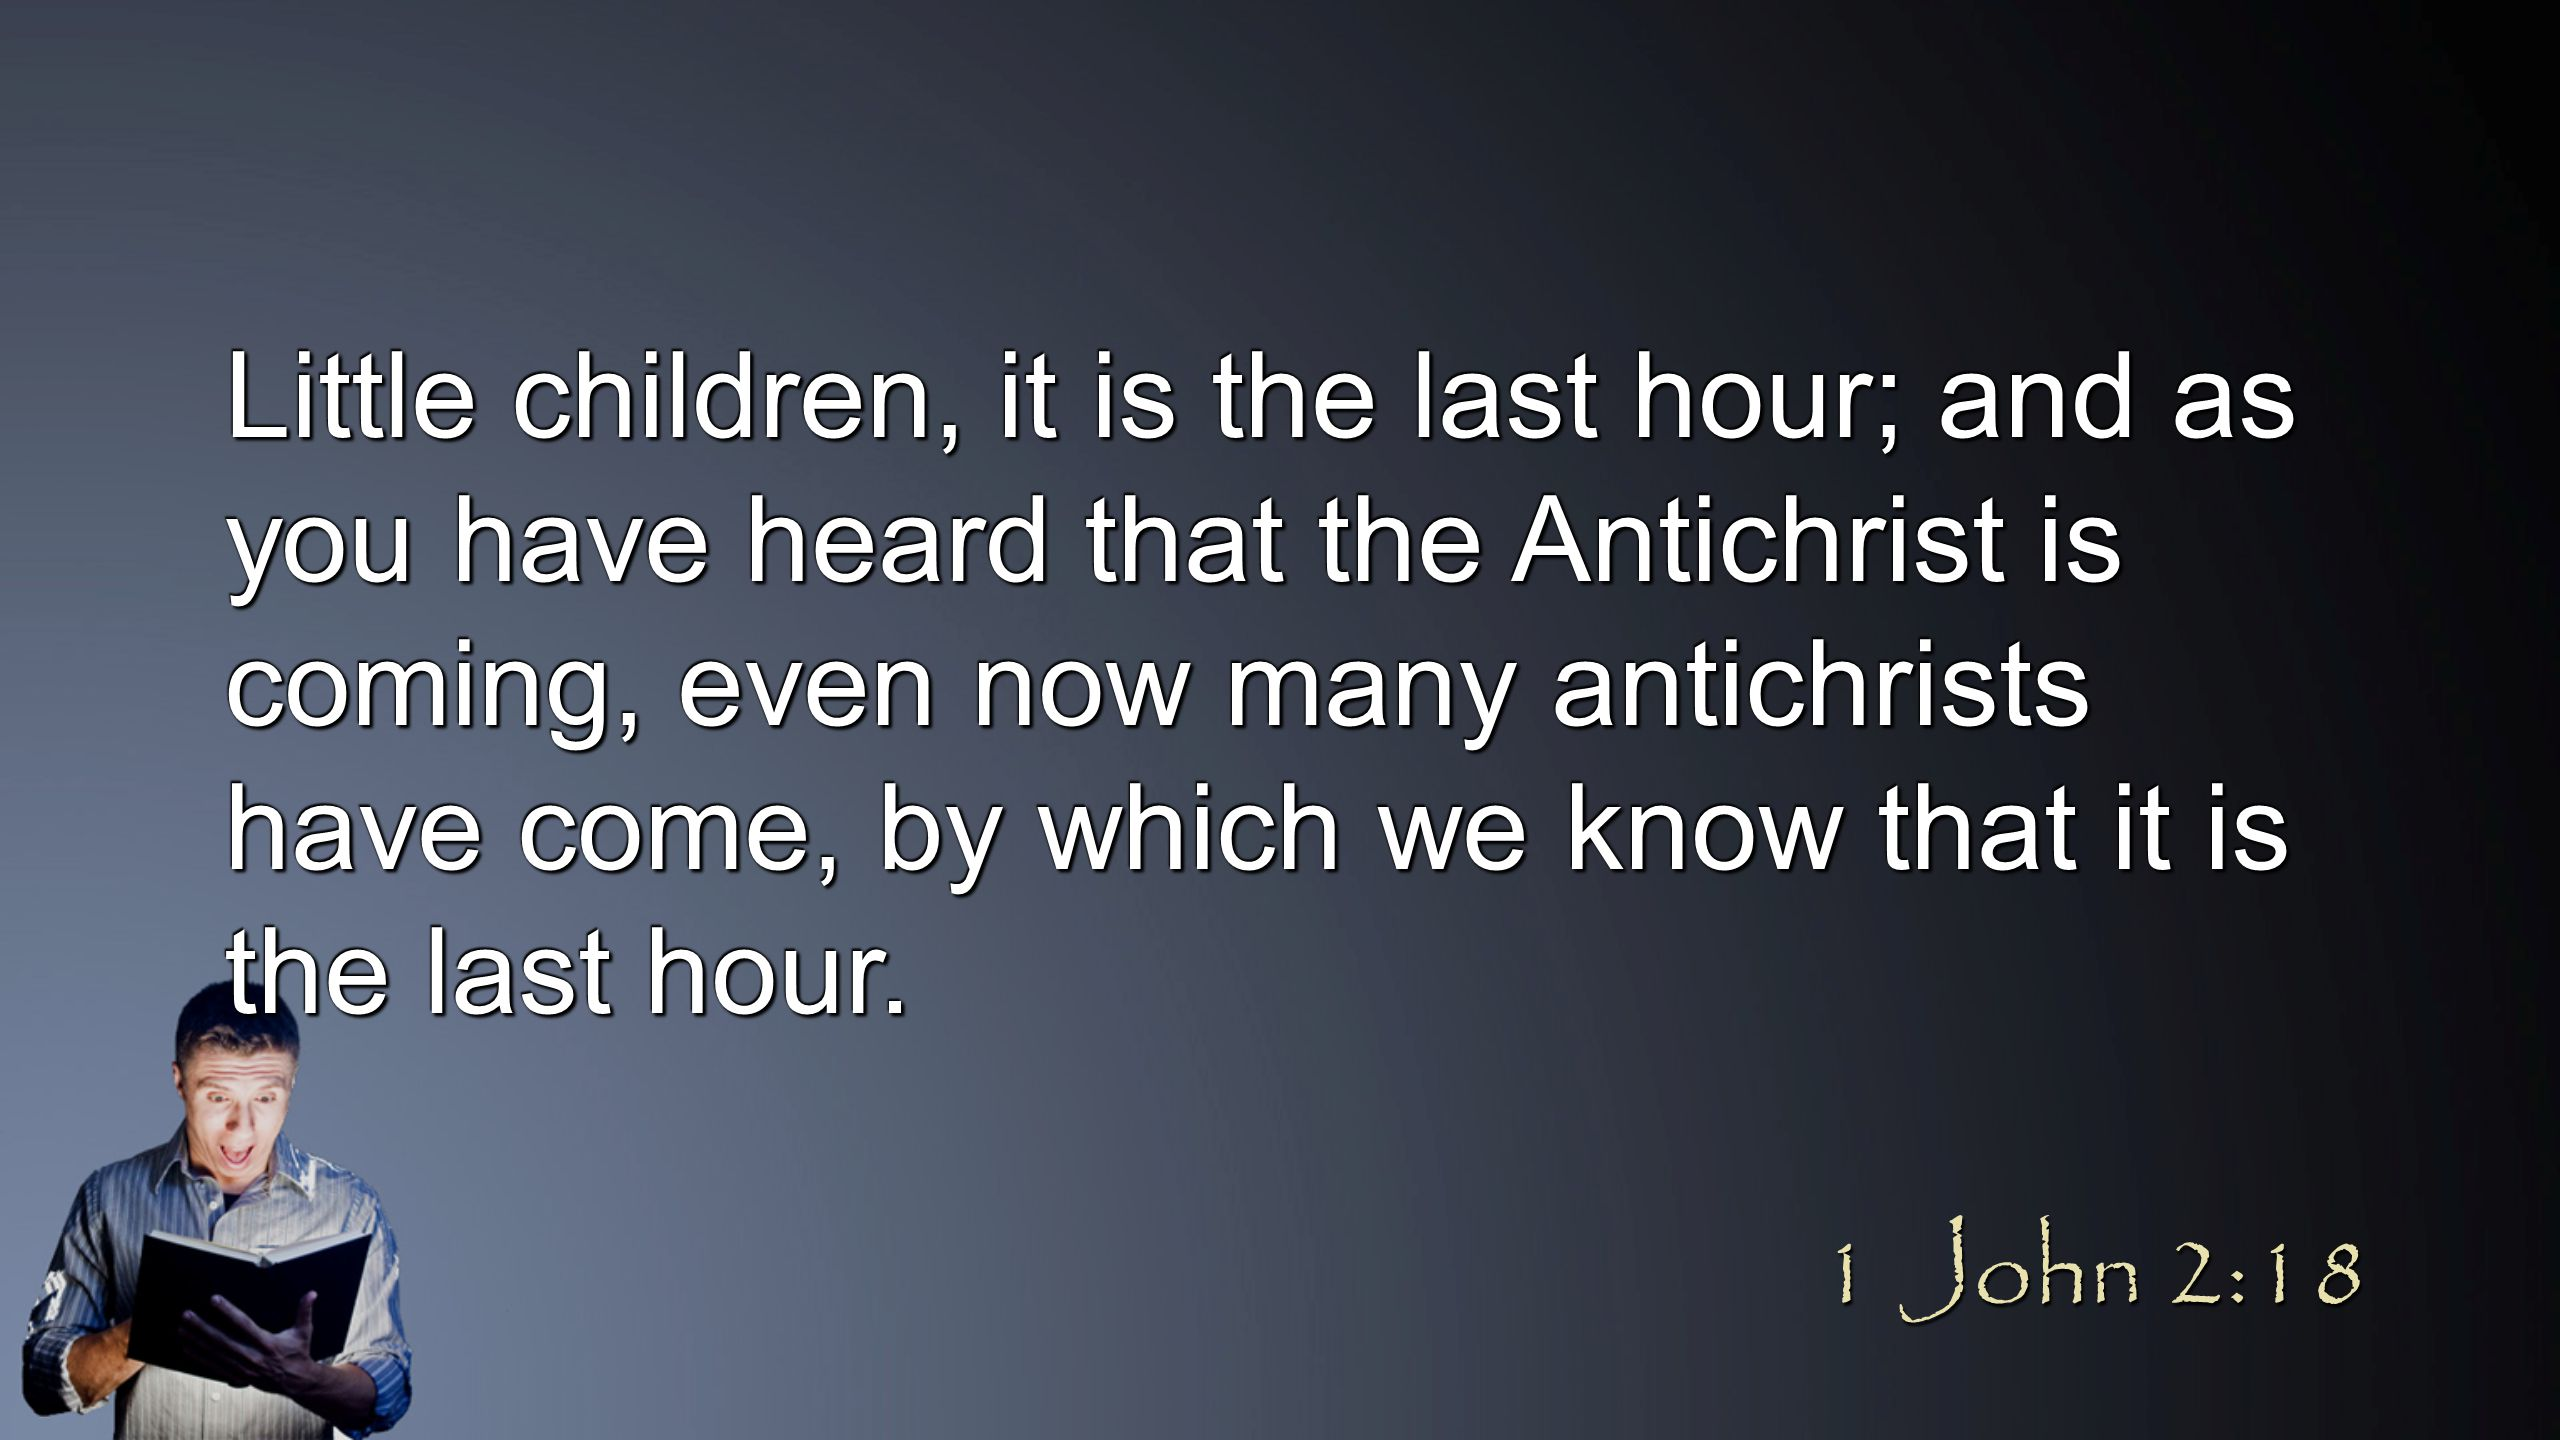 Little children, it is the last hour; and as you have heard that the Antichrist is coming, even now many antichrists have come, by which we know that